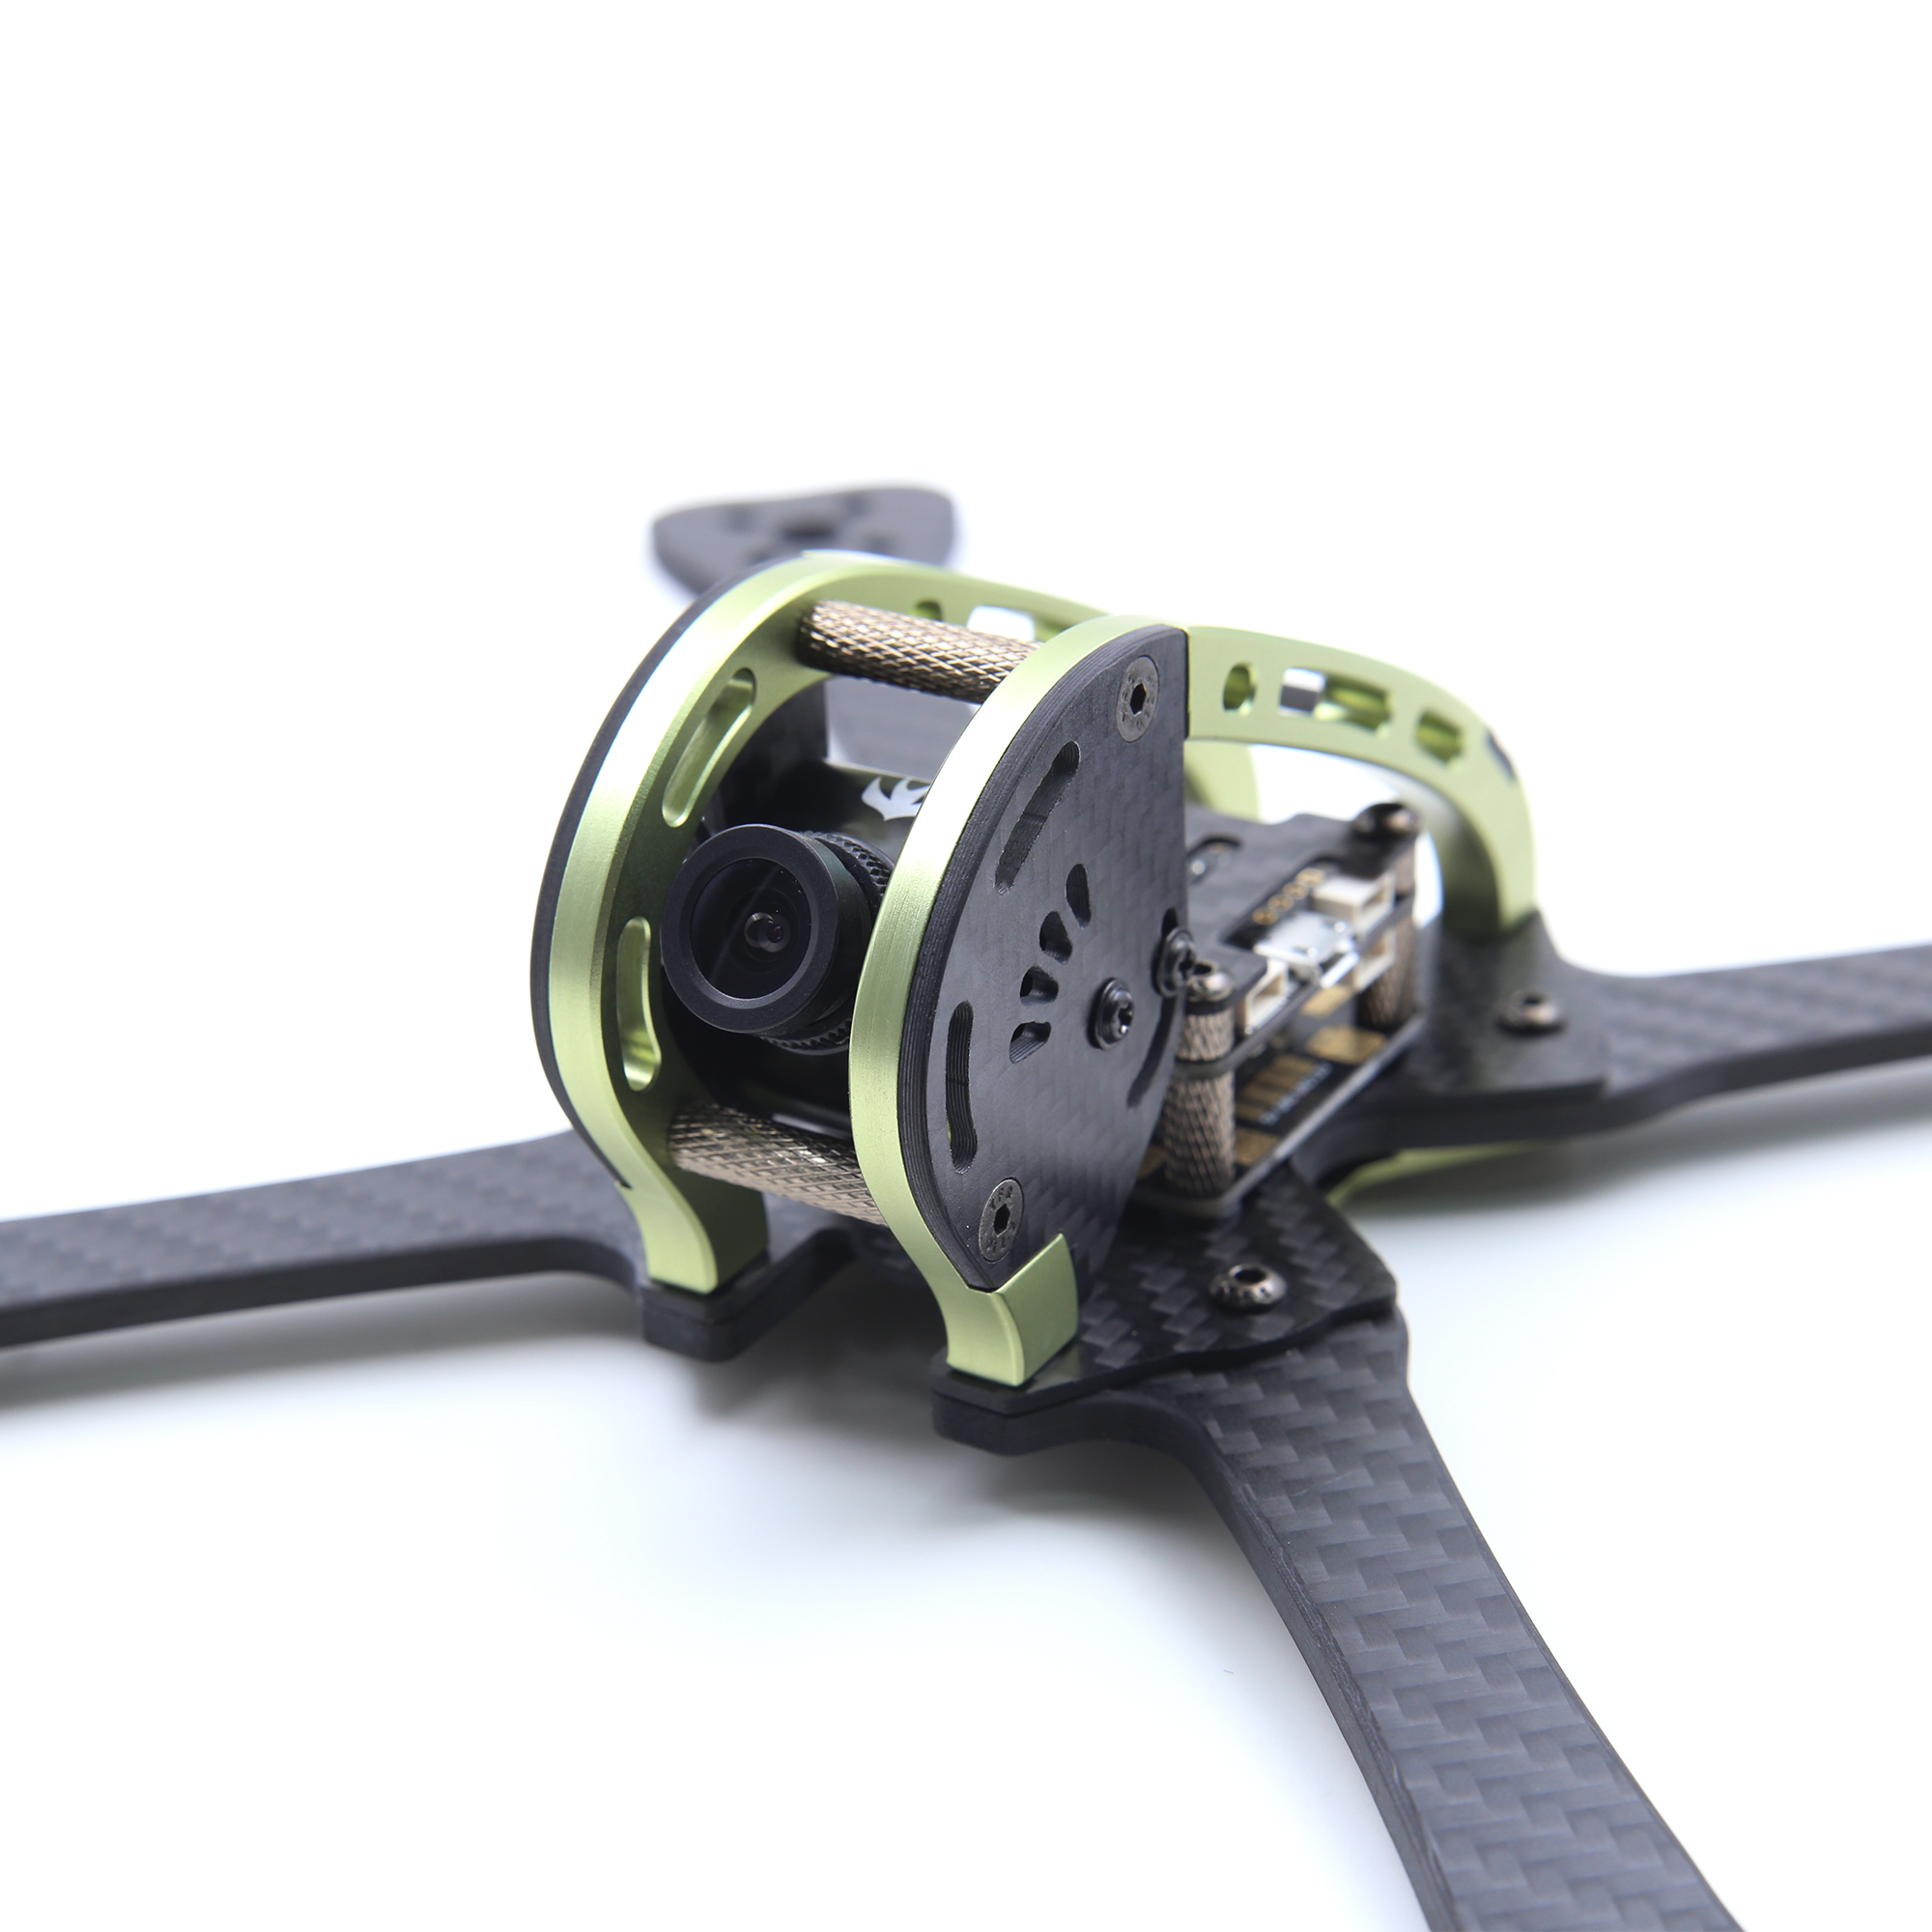 GEPRC GEP LX Leopard Purple Green Edition LX5 220mm FPV Racing Frame 4mm Arm With PDB 5V & 12V